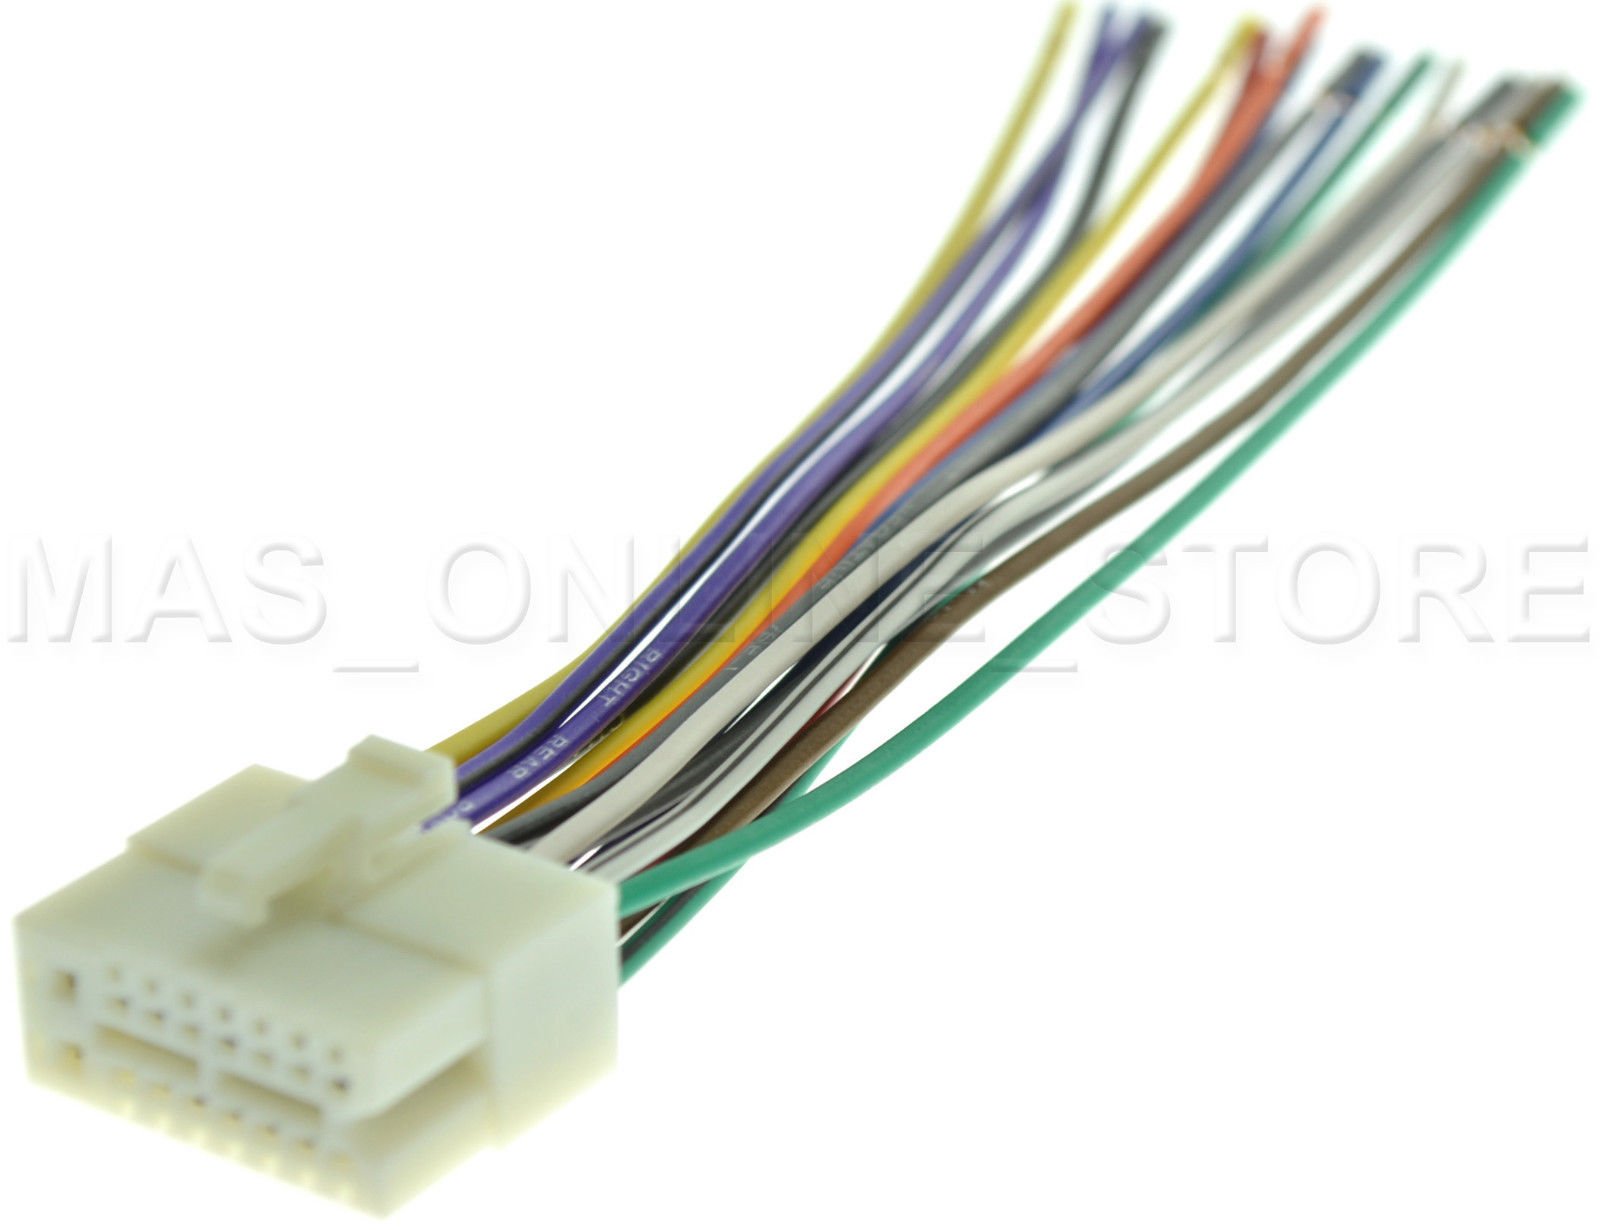 1298 Wire Harness For Clarion Bd 216 Bd216 Pay Today Ships Wiring Ebay Electronics